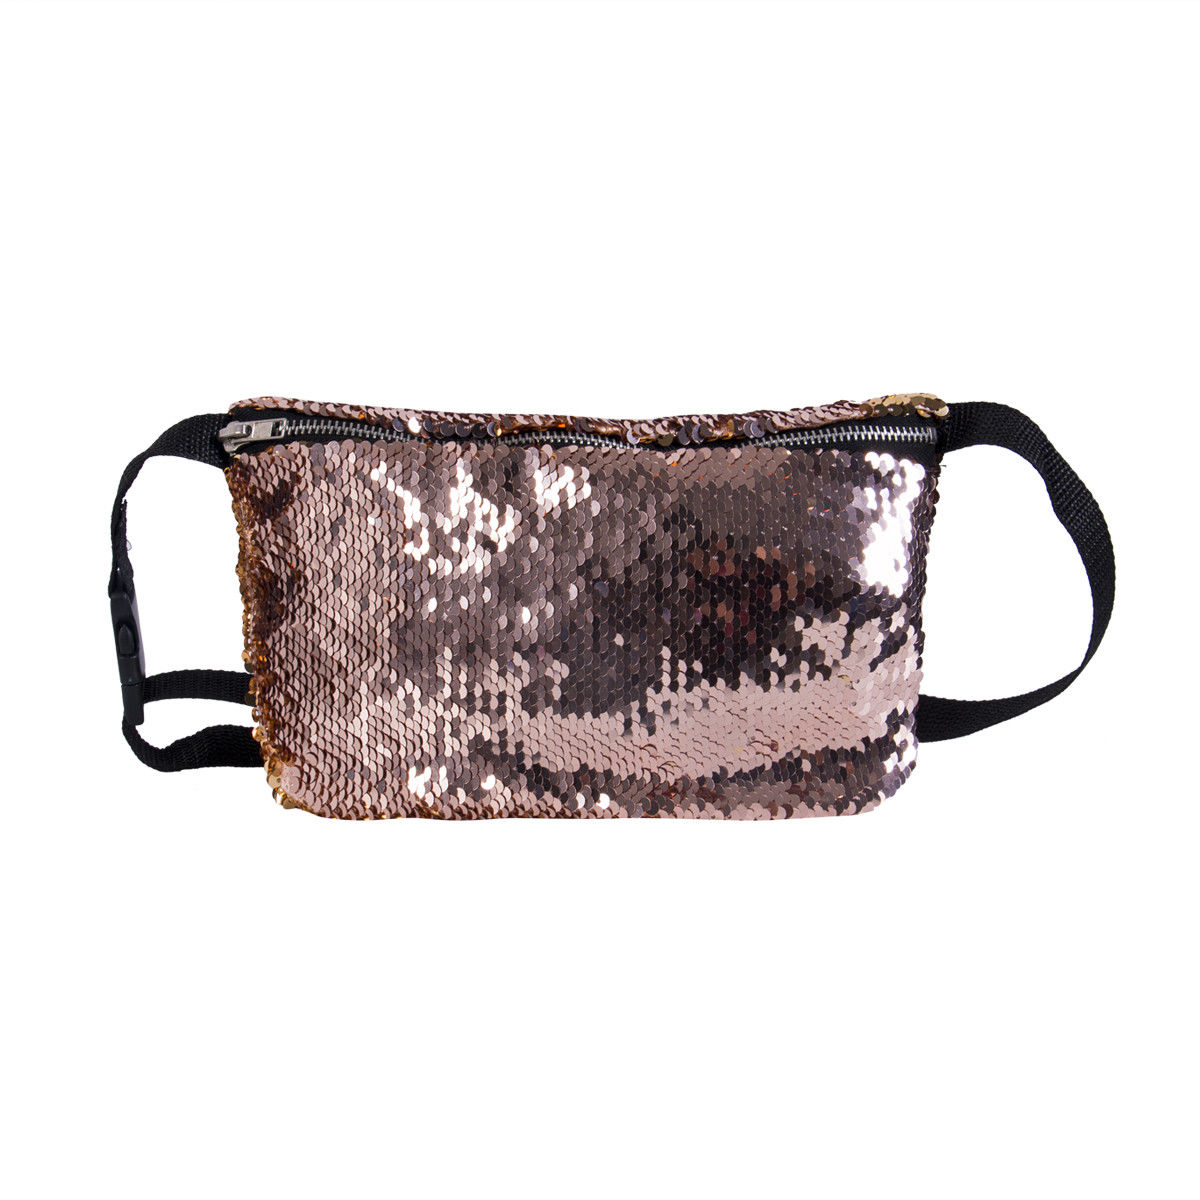 купить New Style Fashion Reversible Sequin Glitter Waist Fanny Pack Belt Bum Bag Pouch Sequined Solid Waist Packs по цене 136 рублей